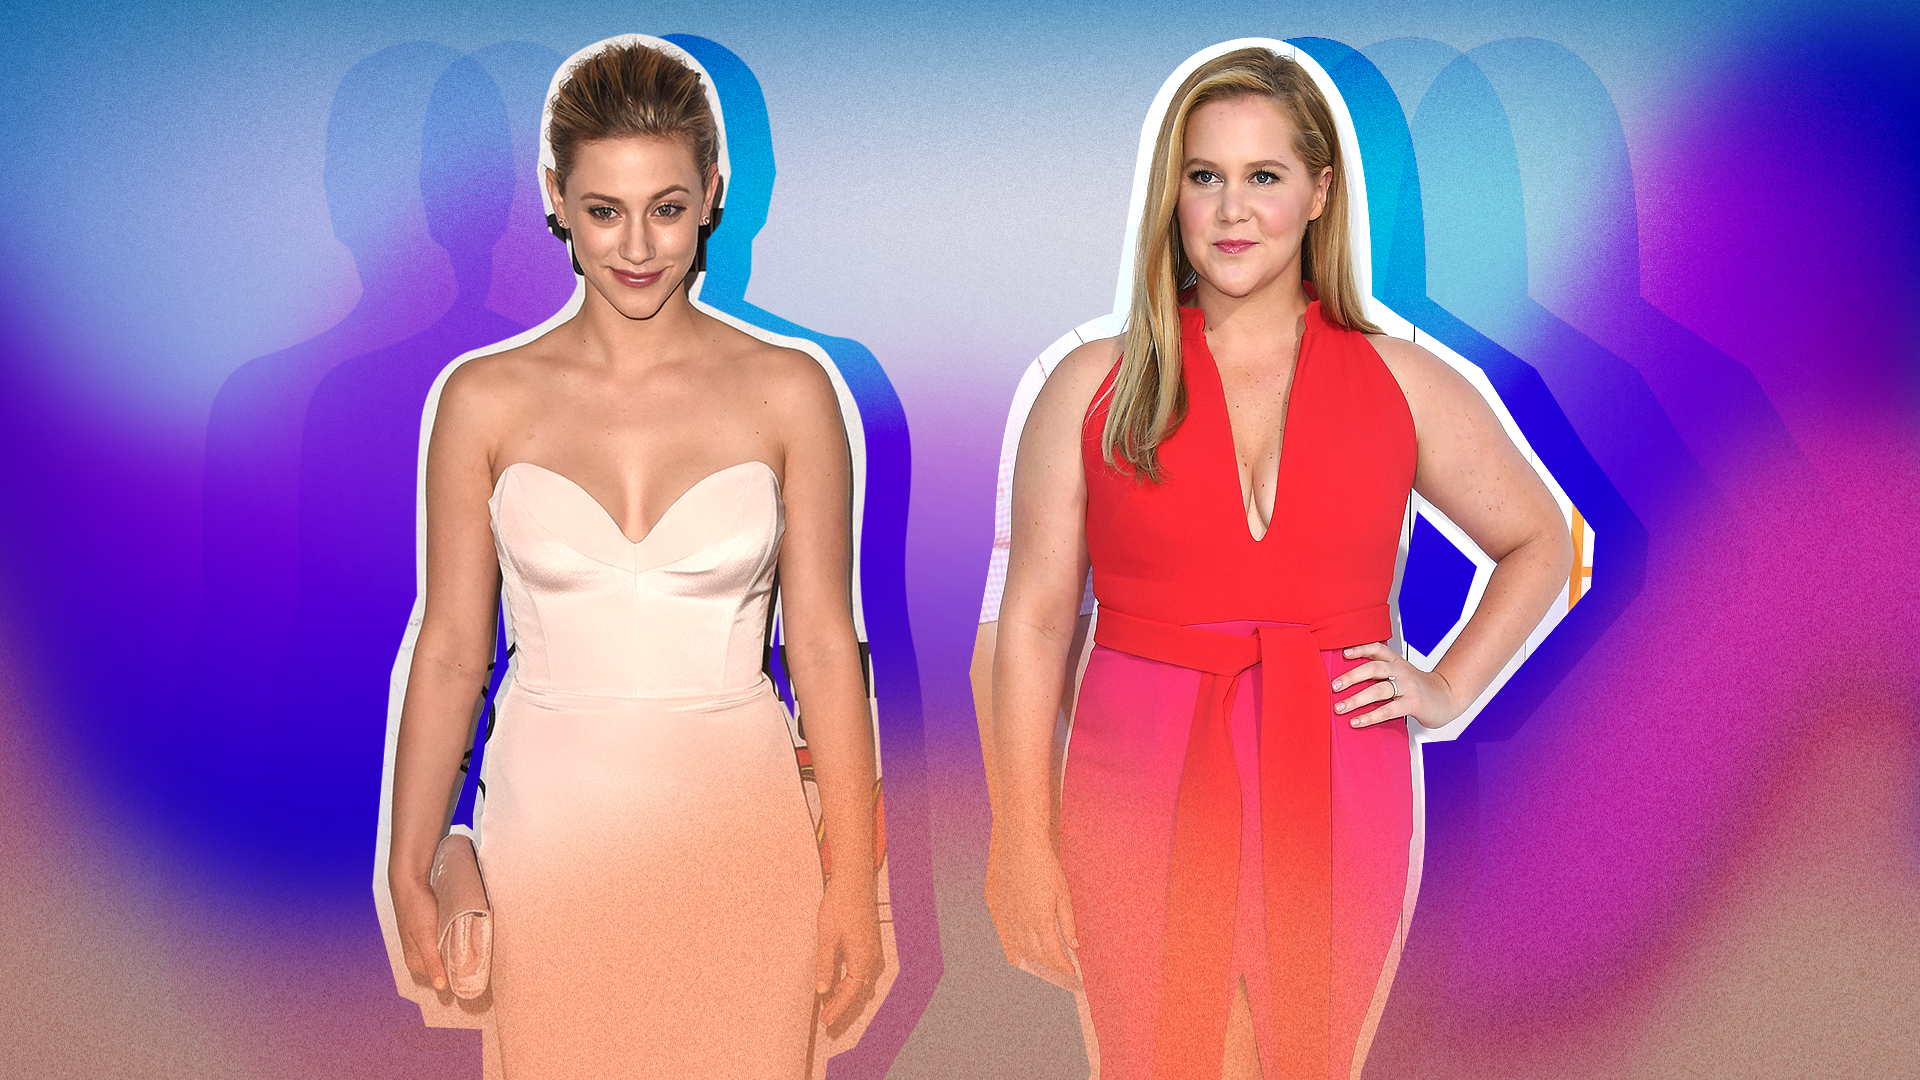 Celebs with Acceptable Bodies